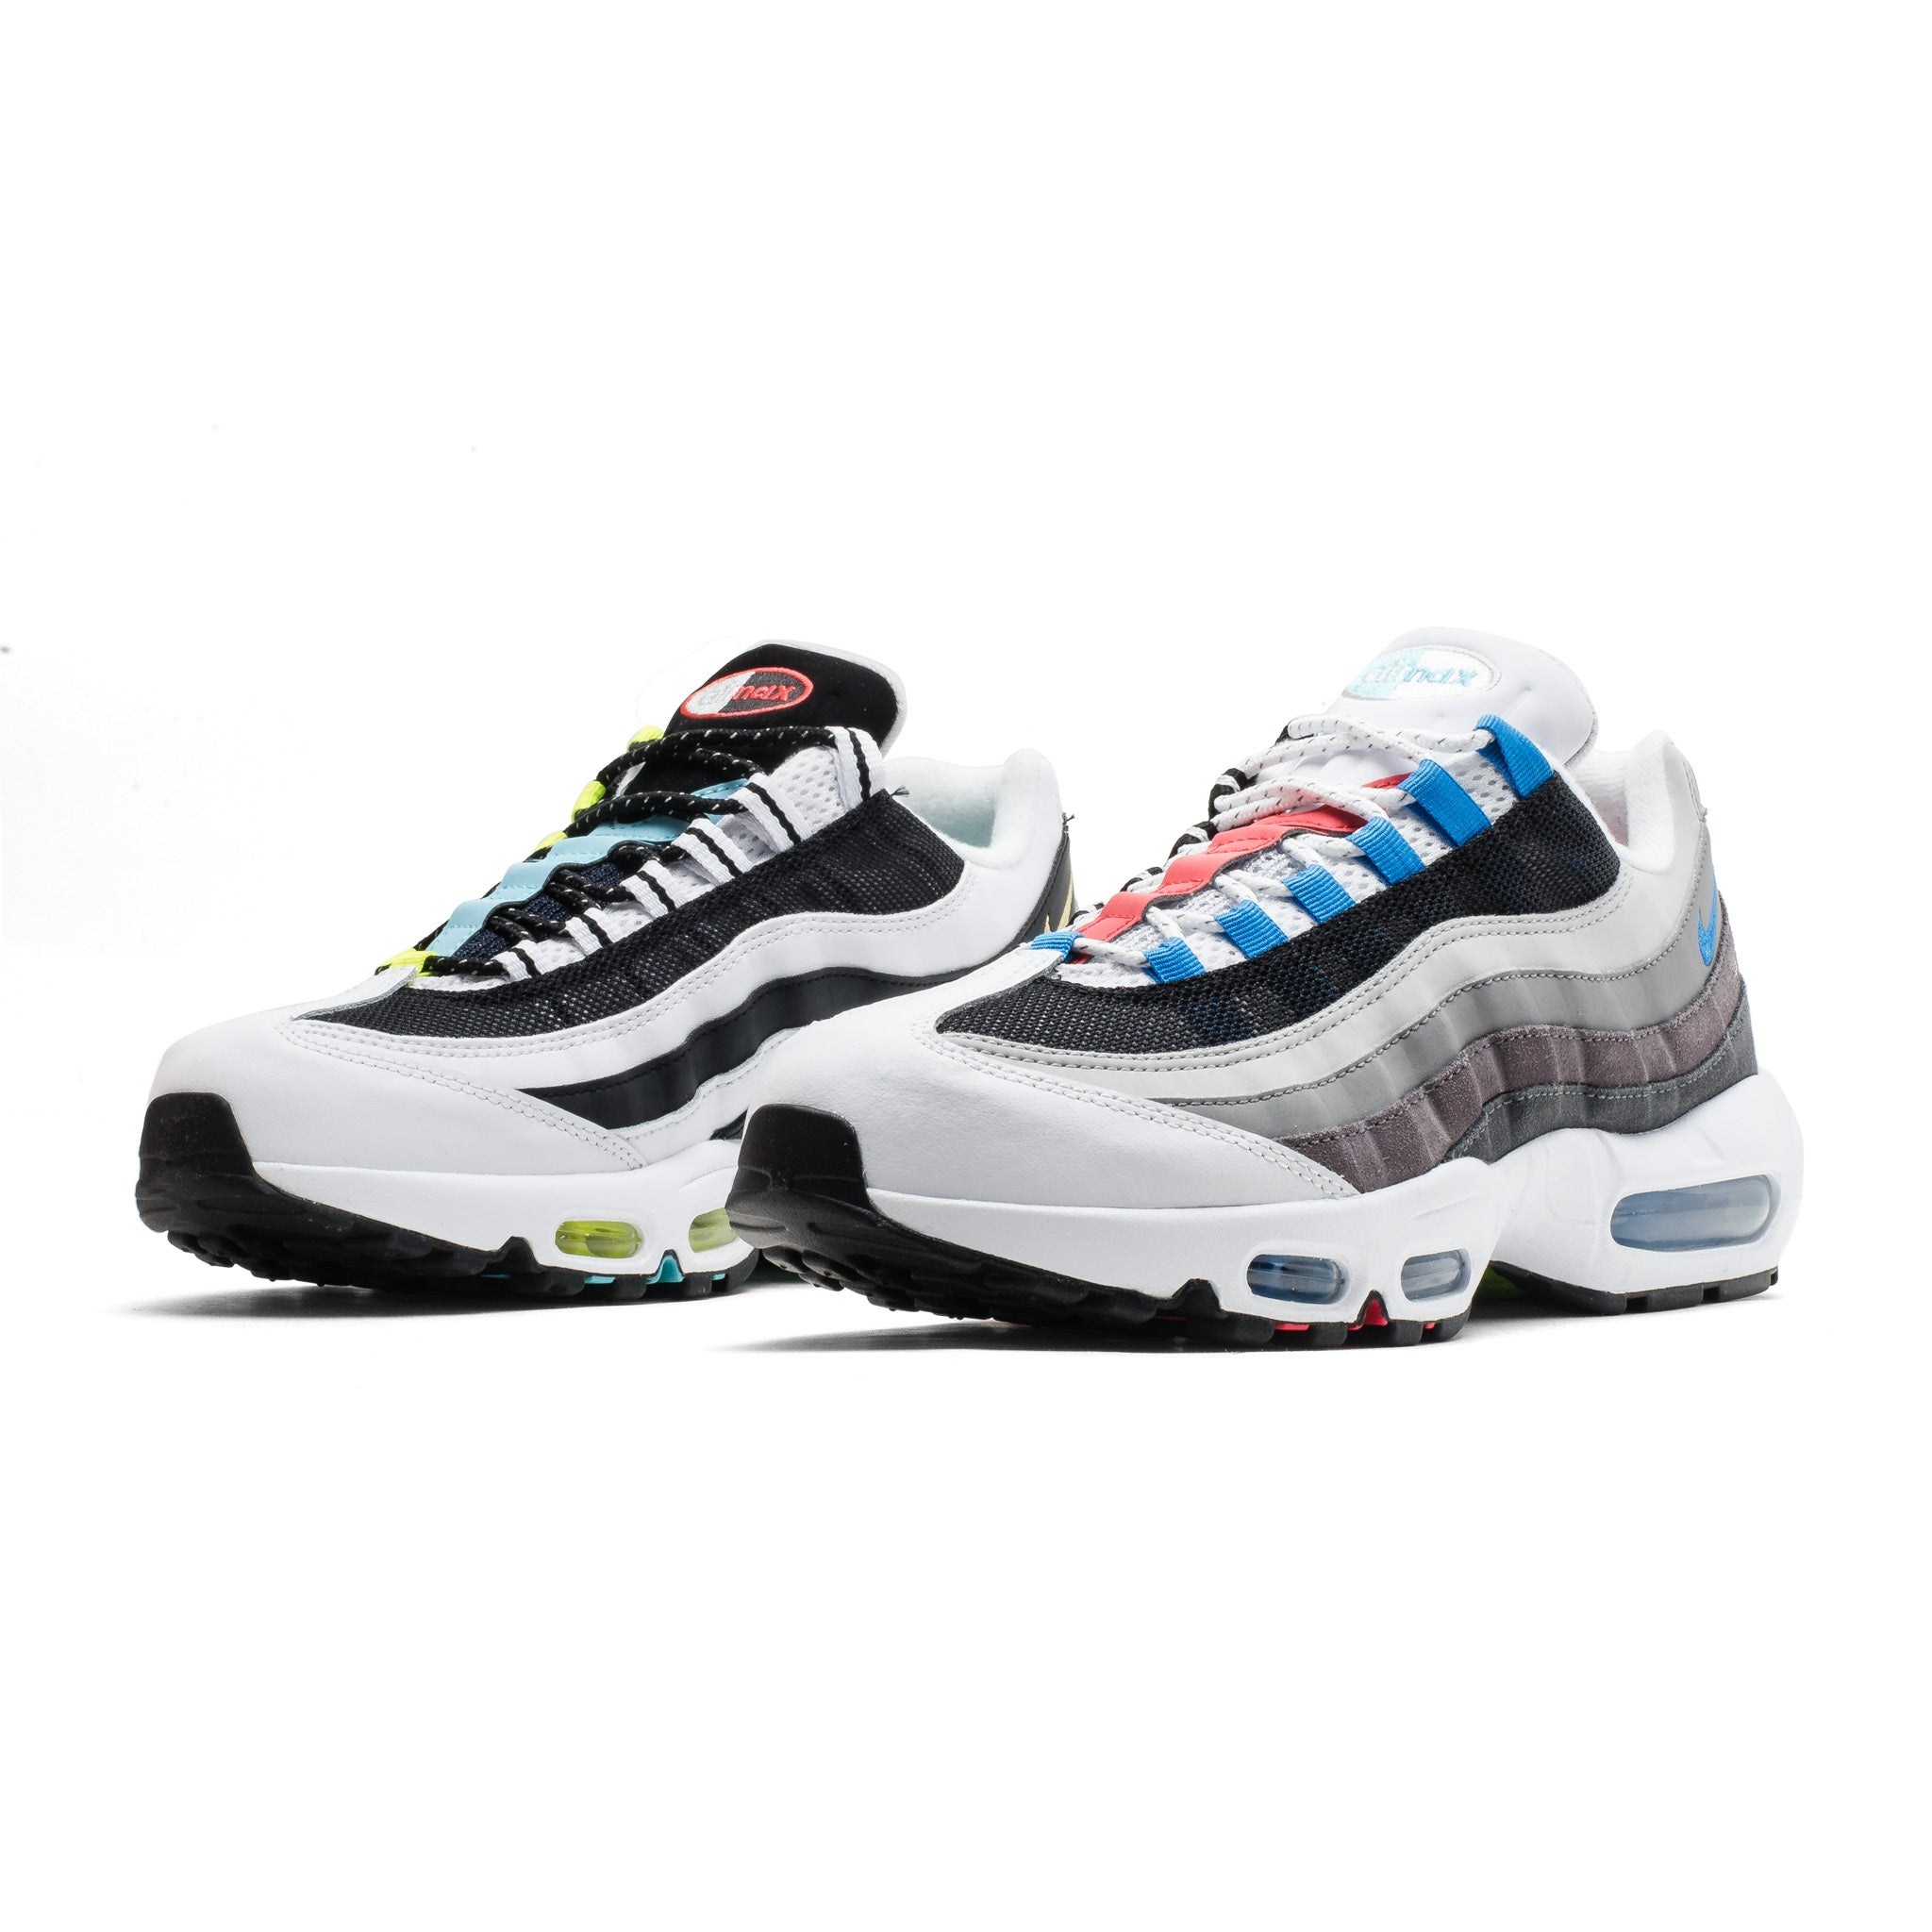 Air Max 95 QS CJ0589-001 Greedy 2.0